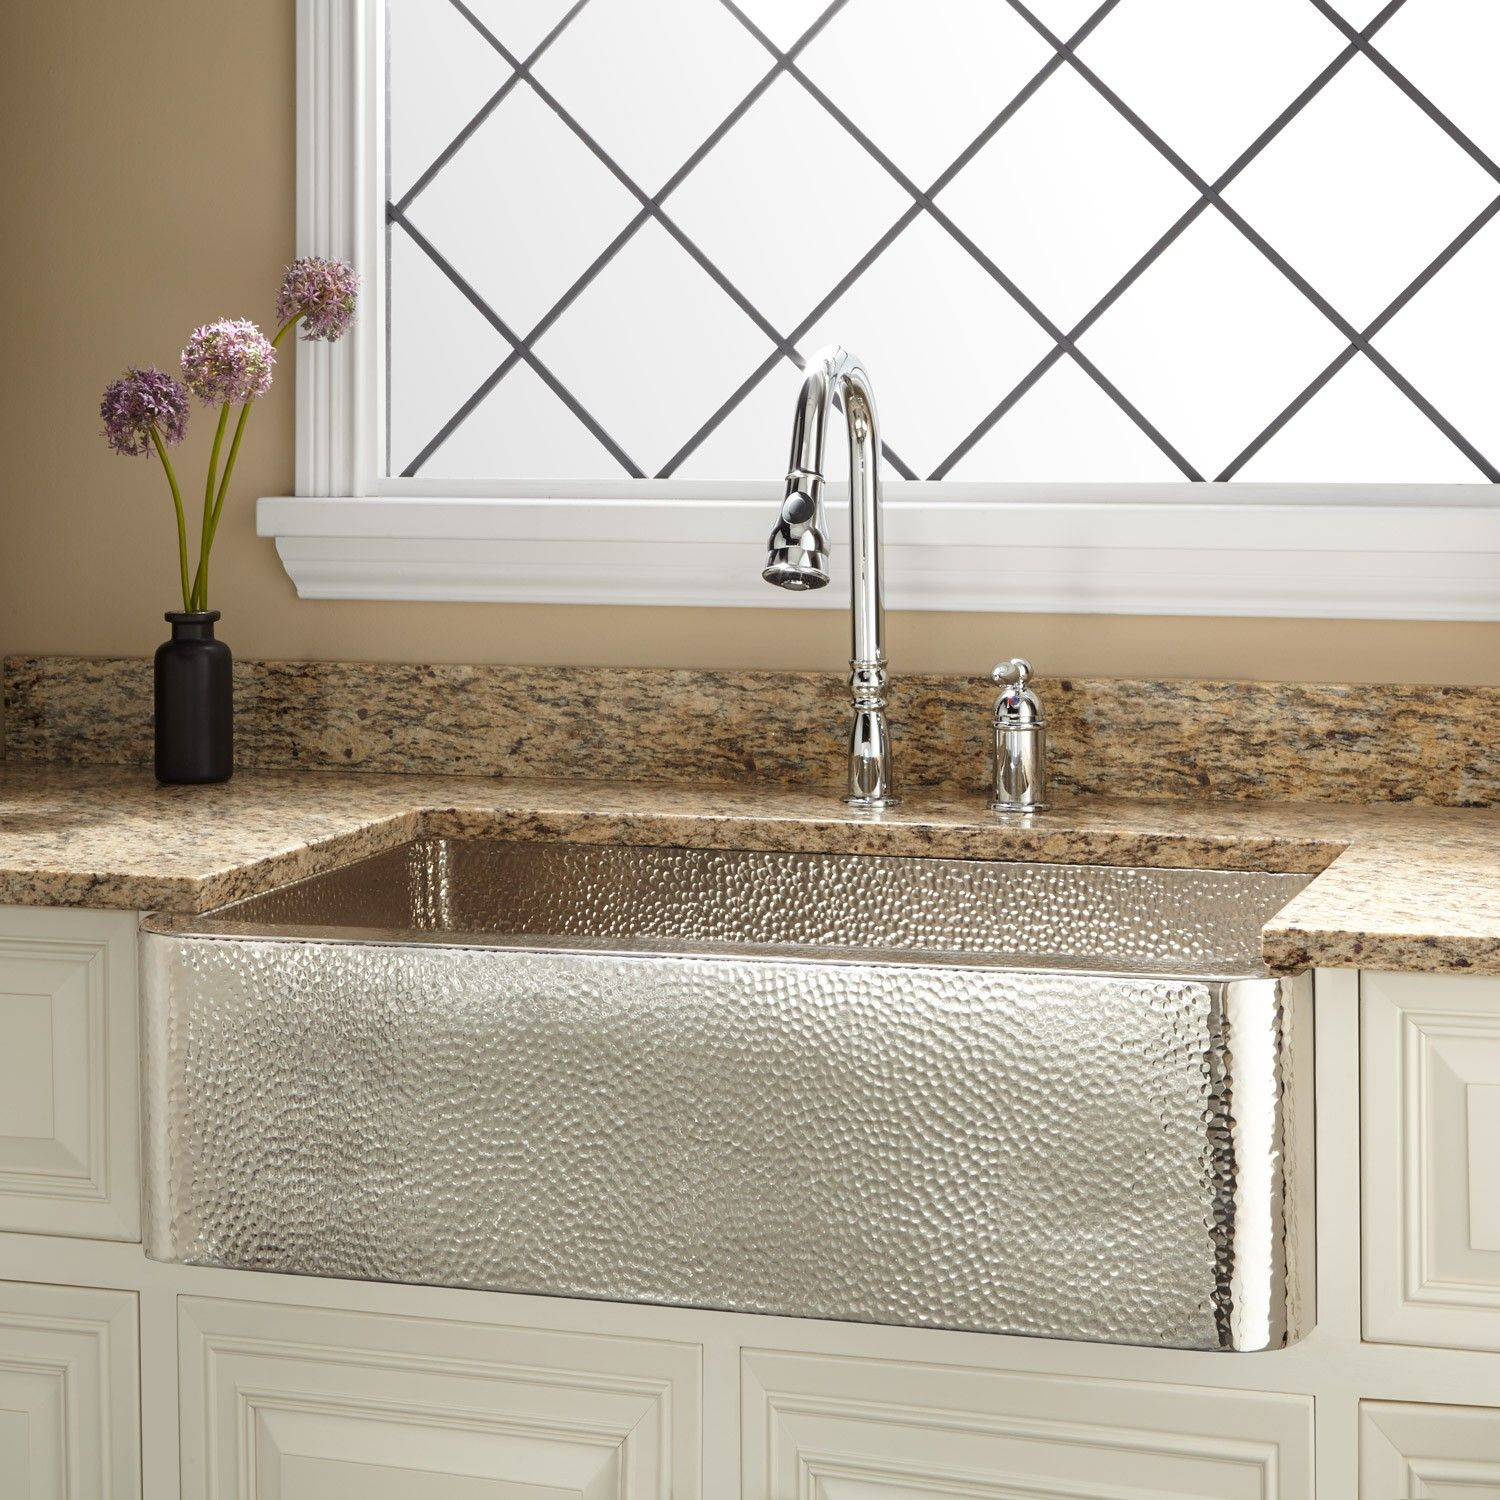 Arent These Hammered Nickel Kitchen Sinks Just Gorgeous We Wish They Were